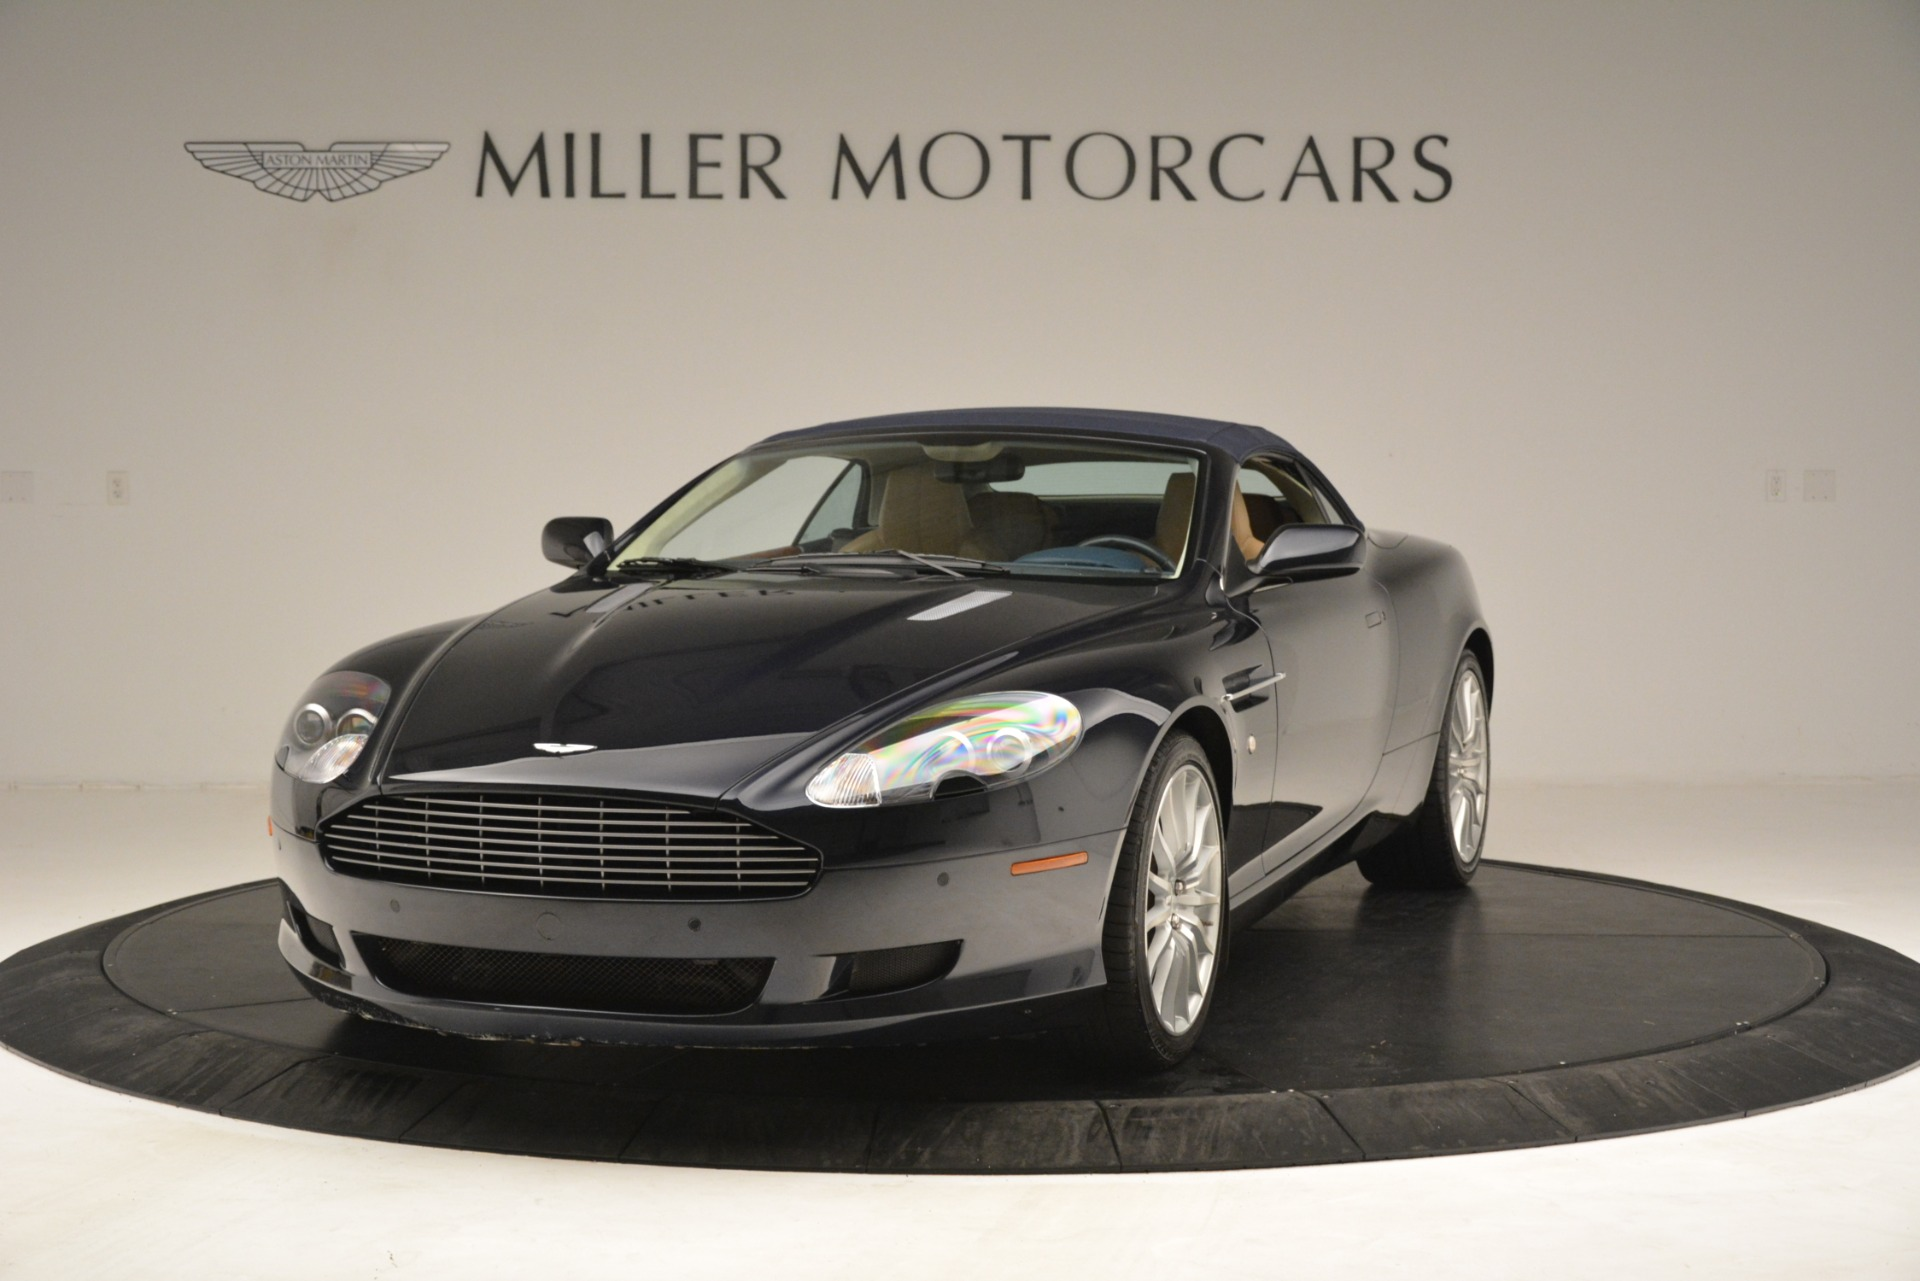 Used 2007 Aston Martin DB9 Convertible For Sale In Westport, CT 3291_p22